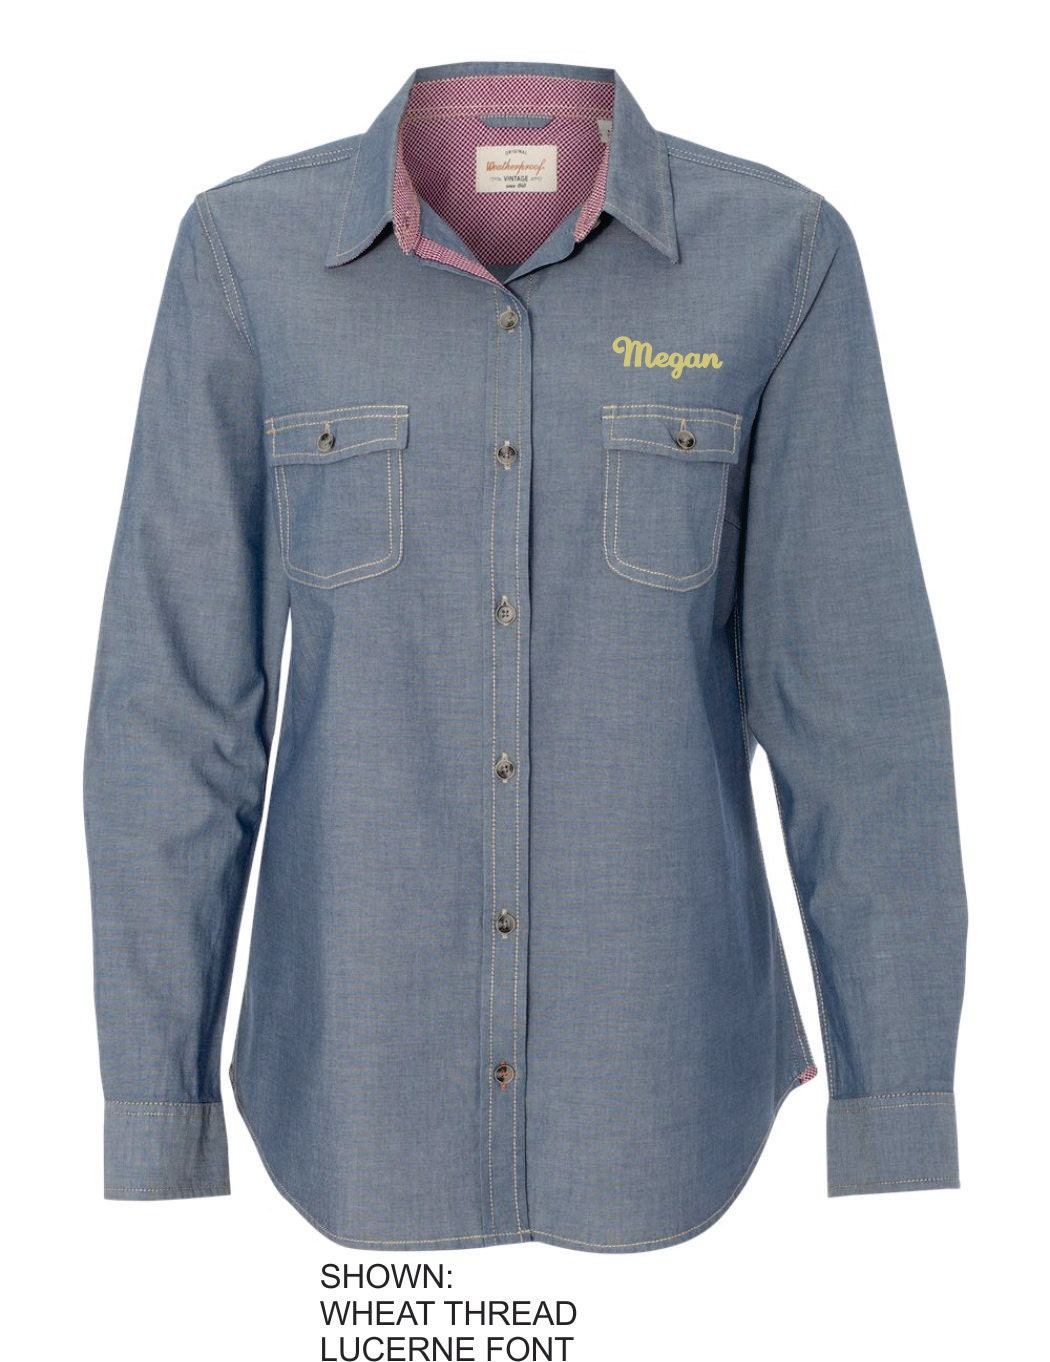 Personalized ladies name dress shirt button down